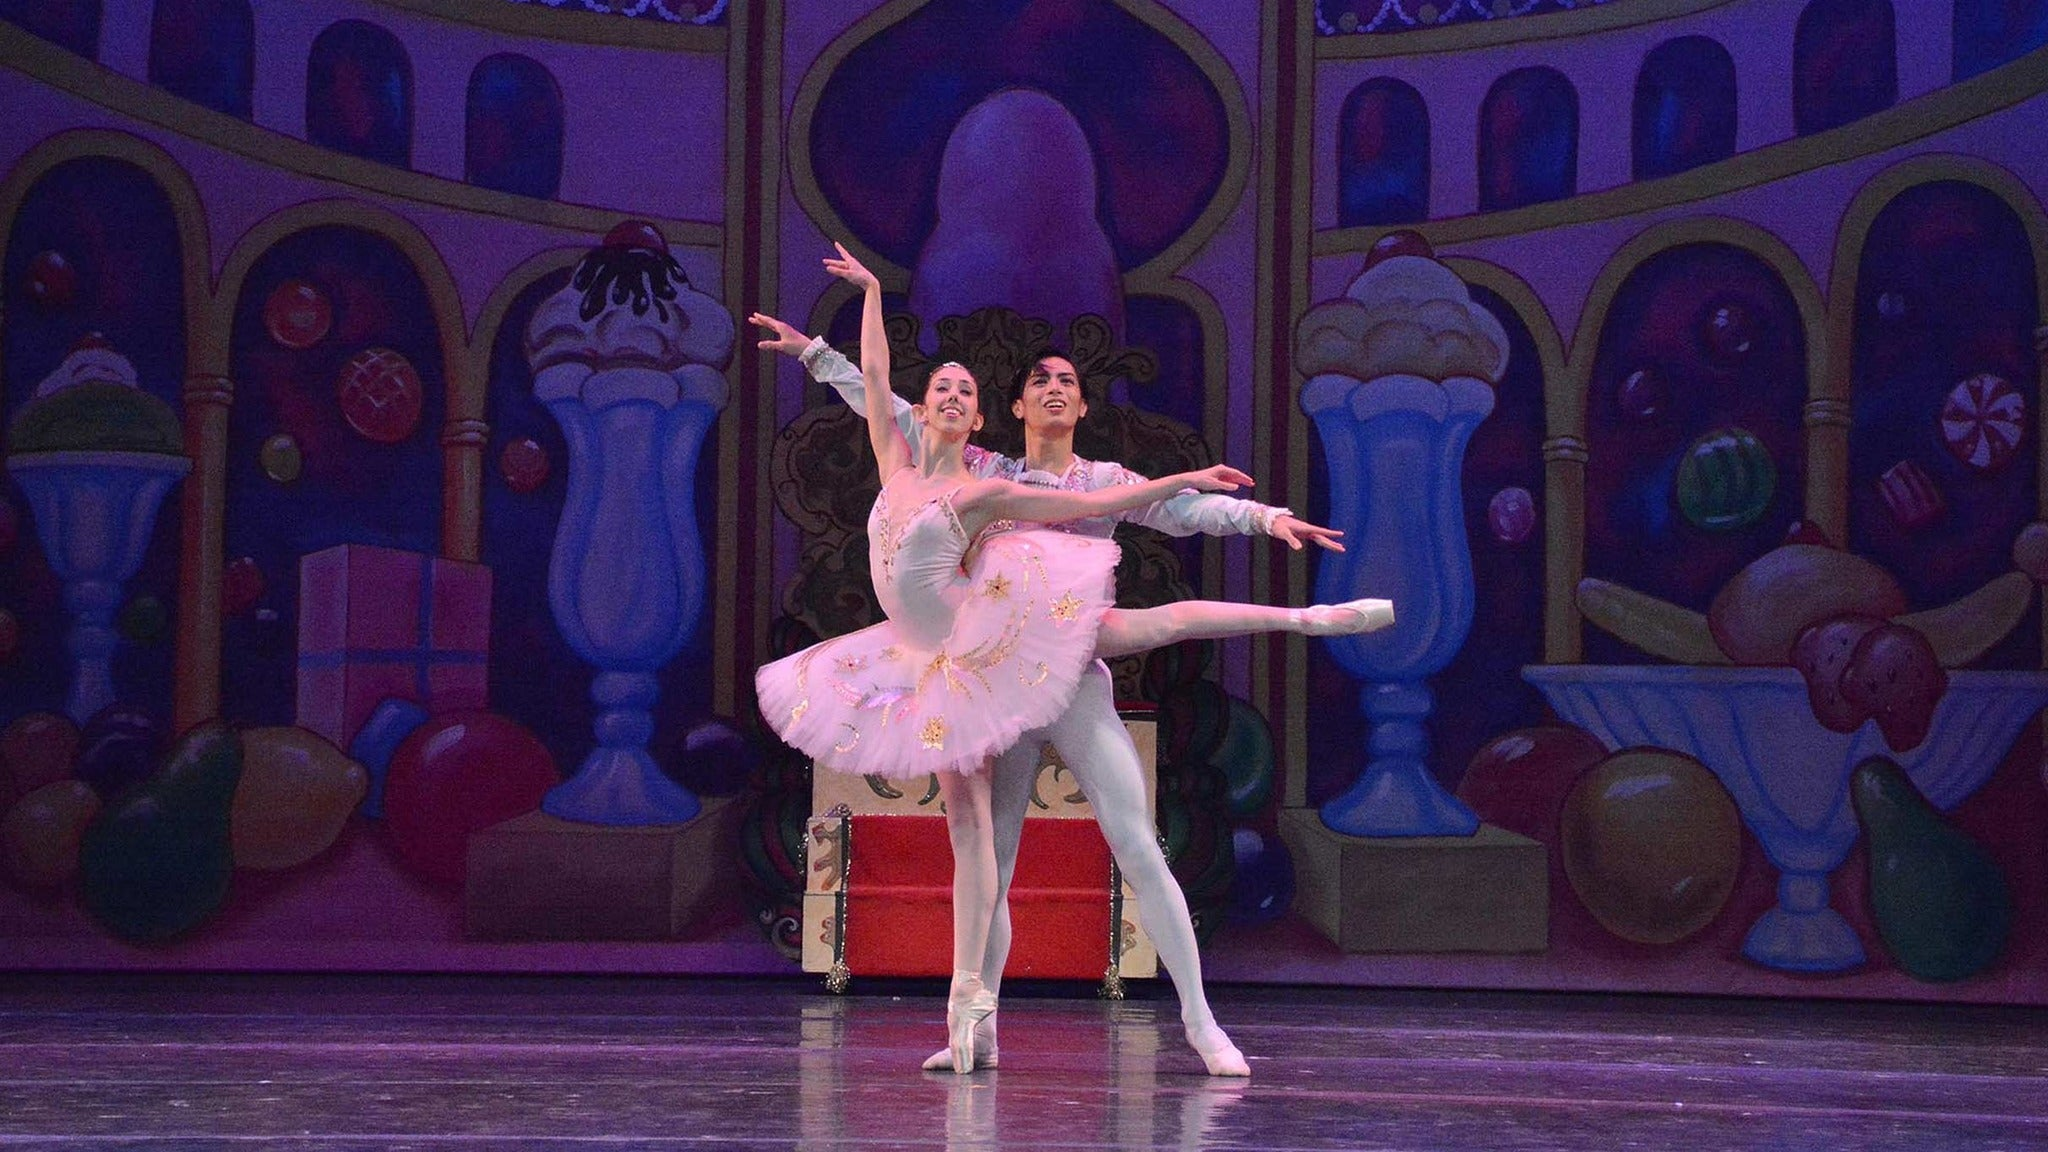 The Nutcracker – Smart Stage Series